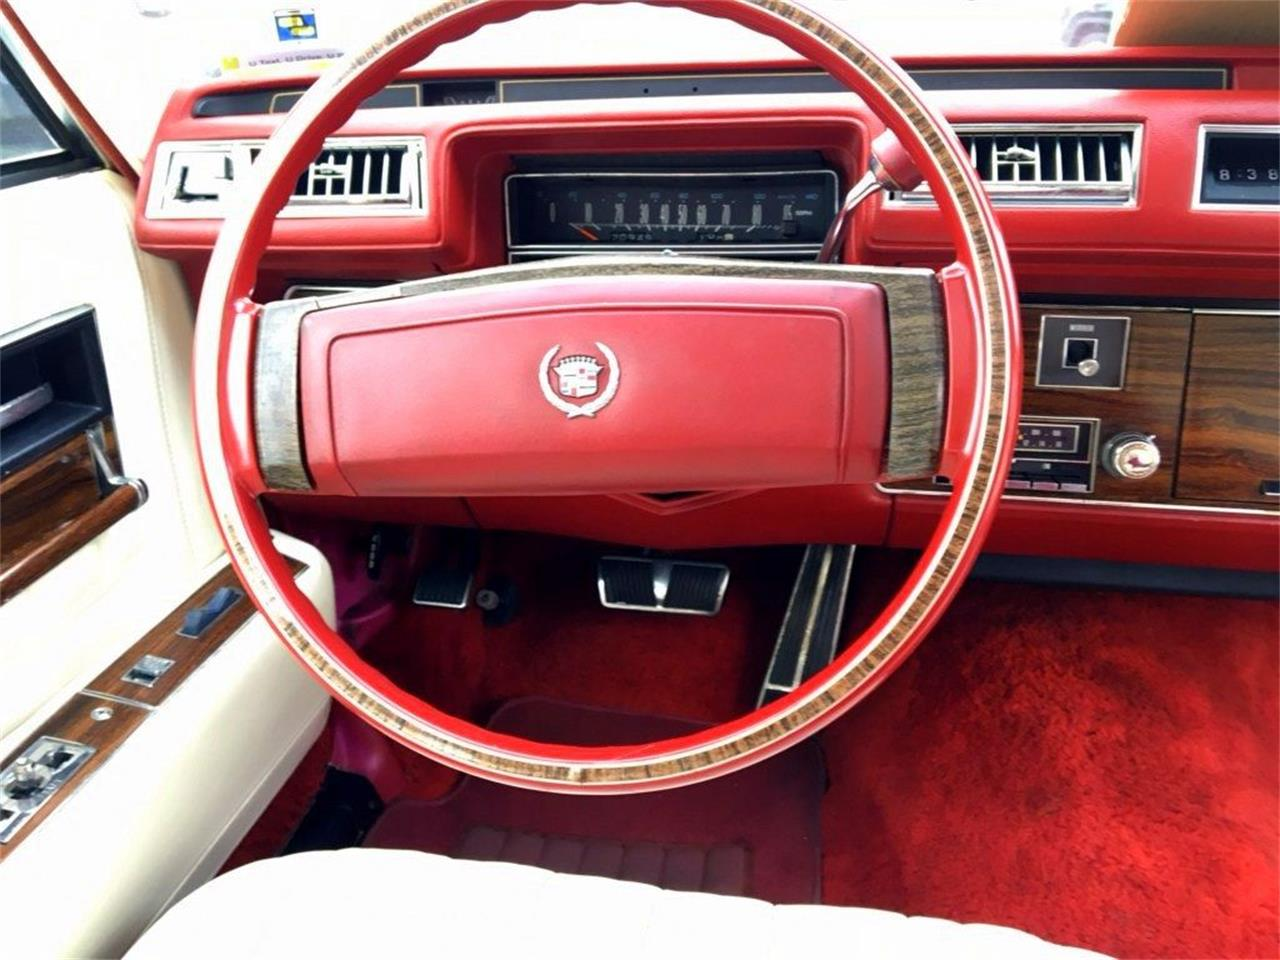 Large Picture of 1978 Cadillac Seville located in New Jersey - $10,990.00 - OCNA